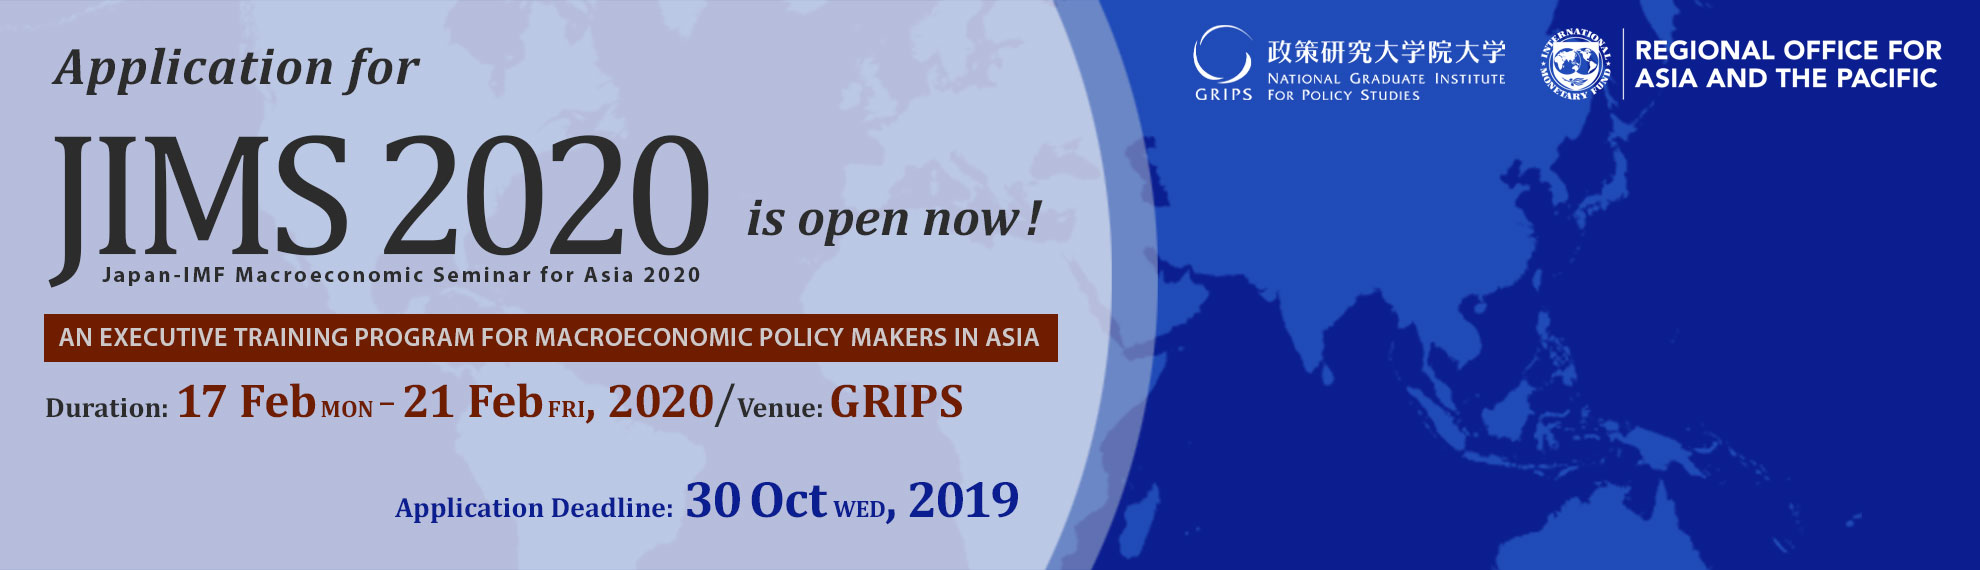 National Graduate Institute for Policy Studies (GRIPS